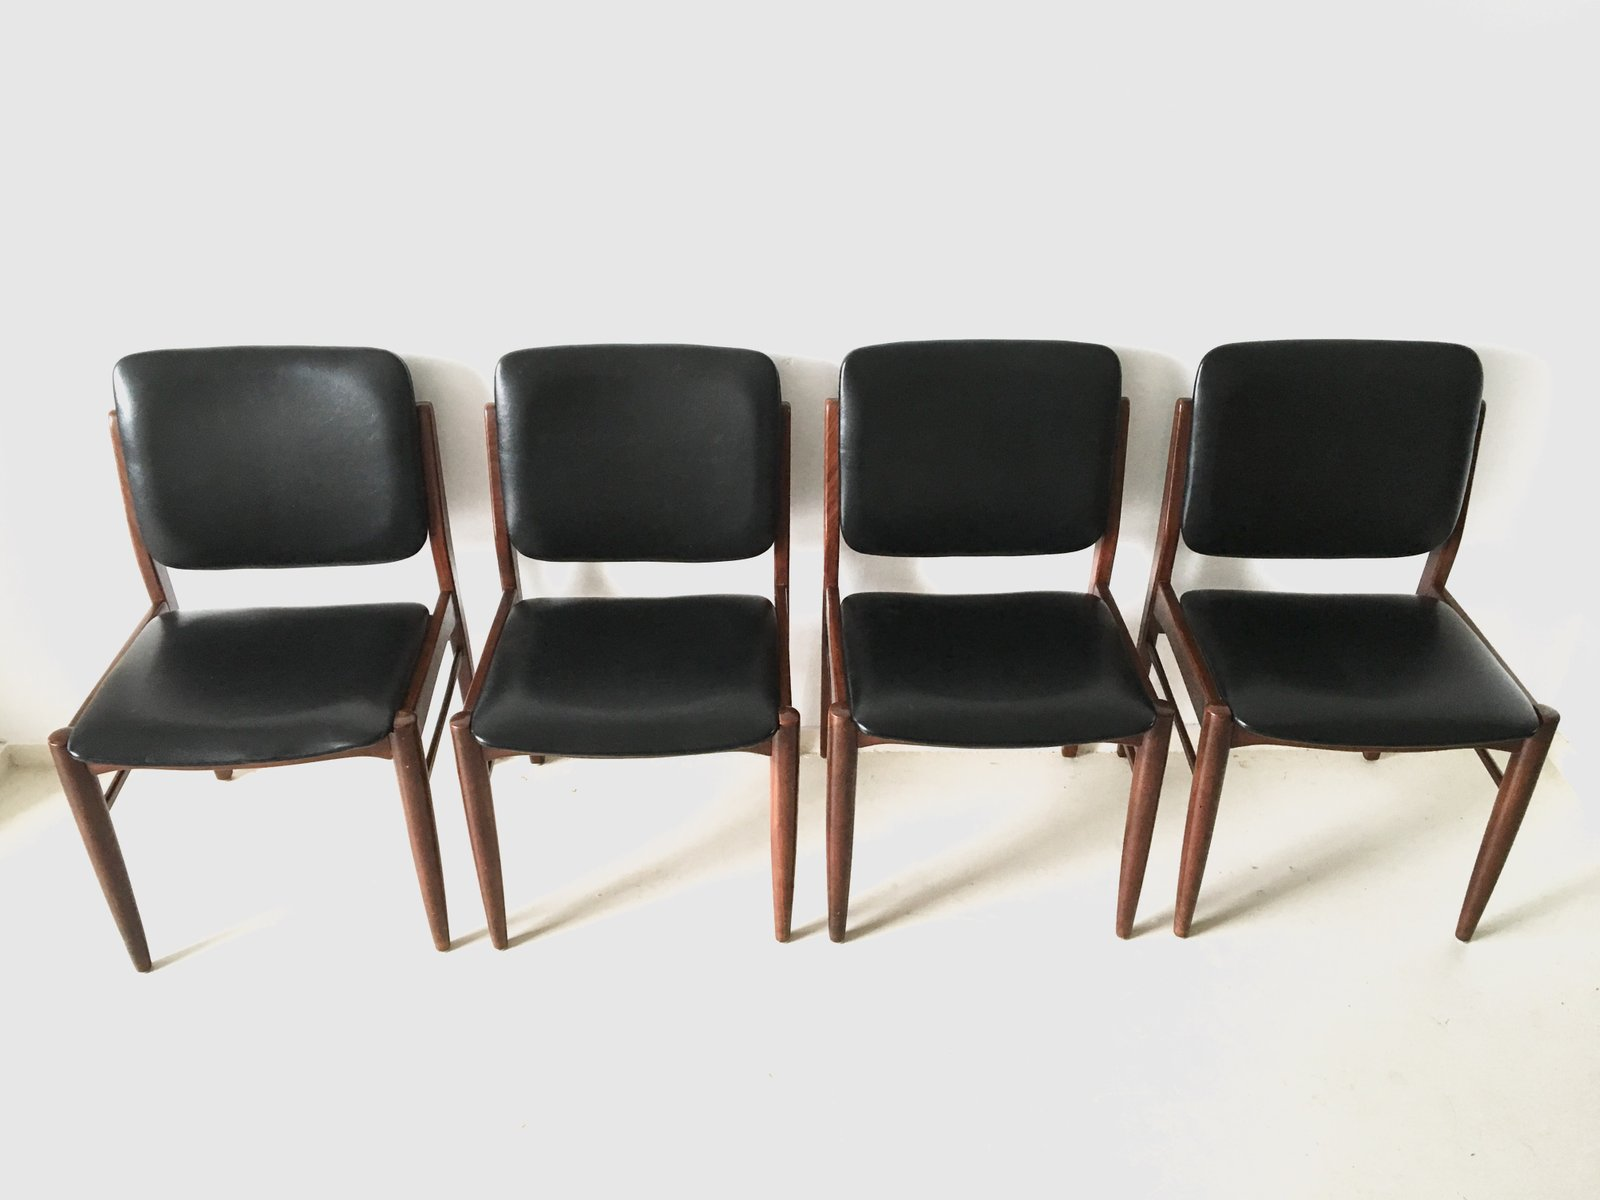 set of 4 chairs child chair for bikes vintage danish dining 1960s sale at